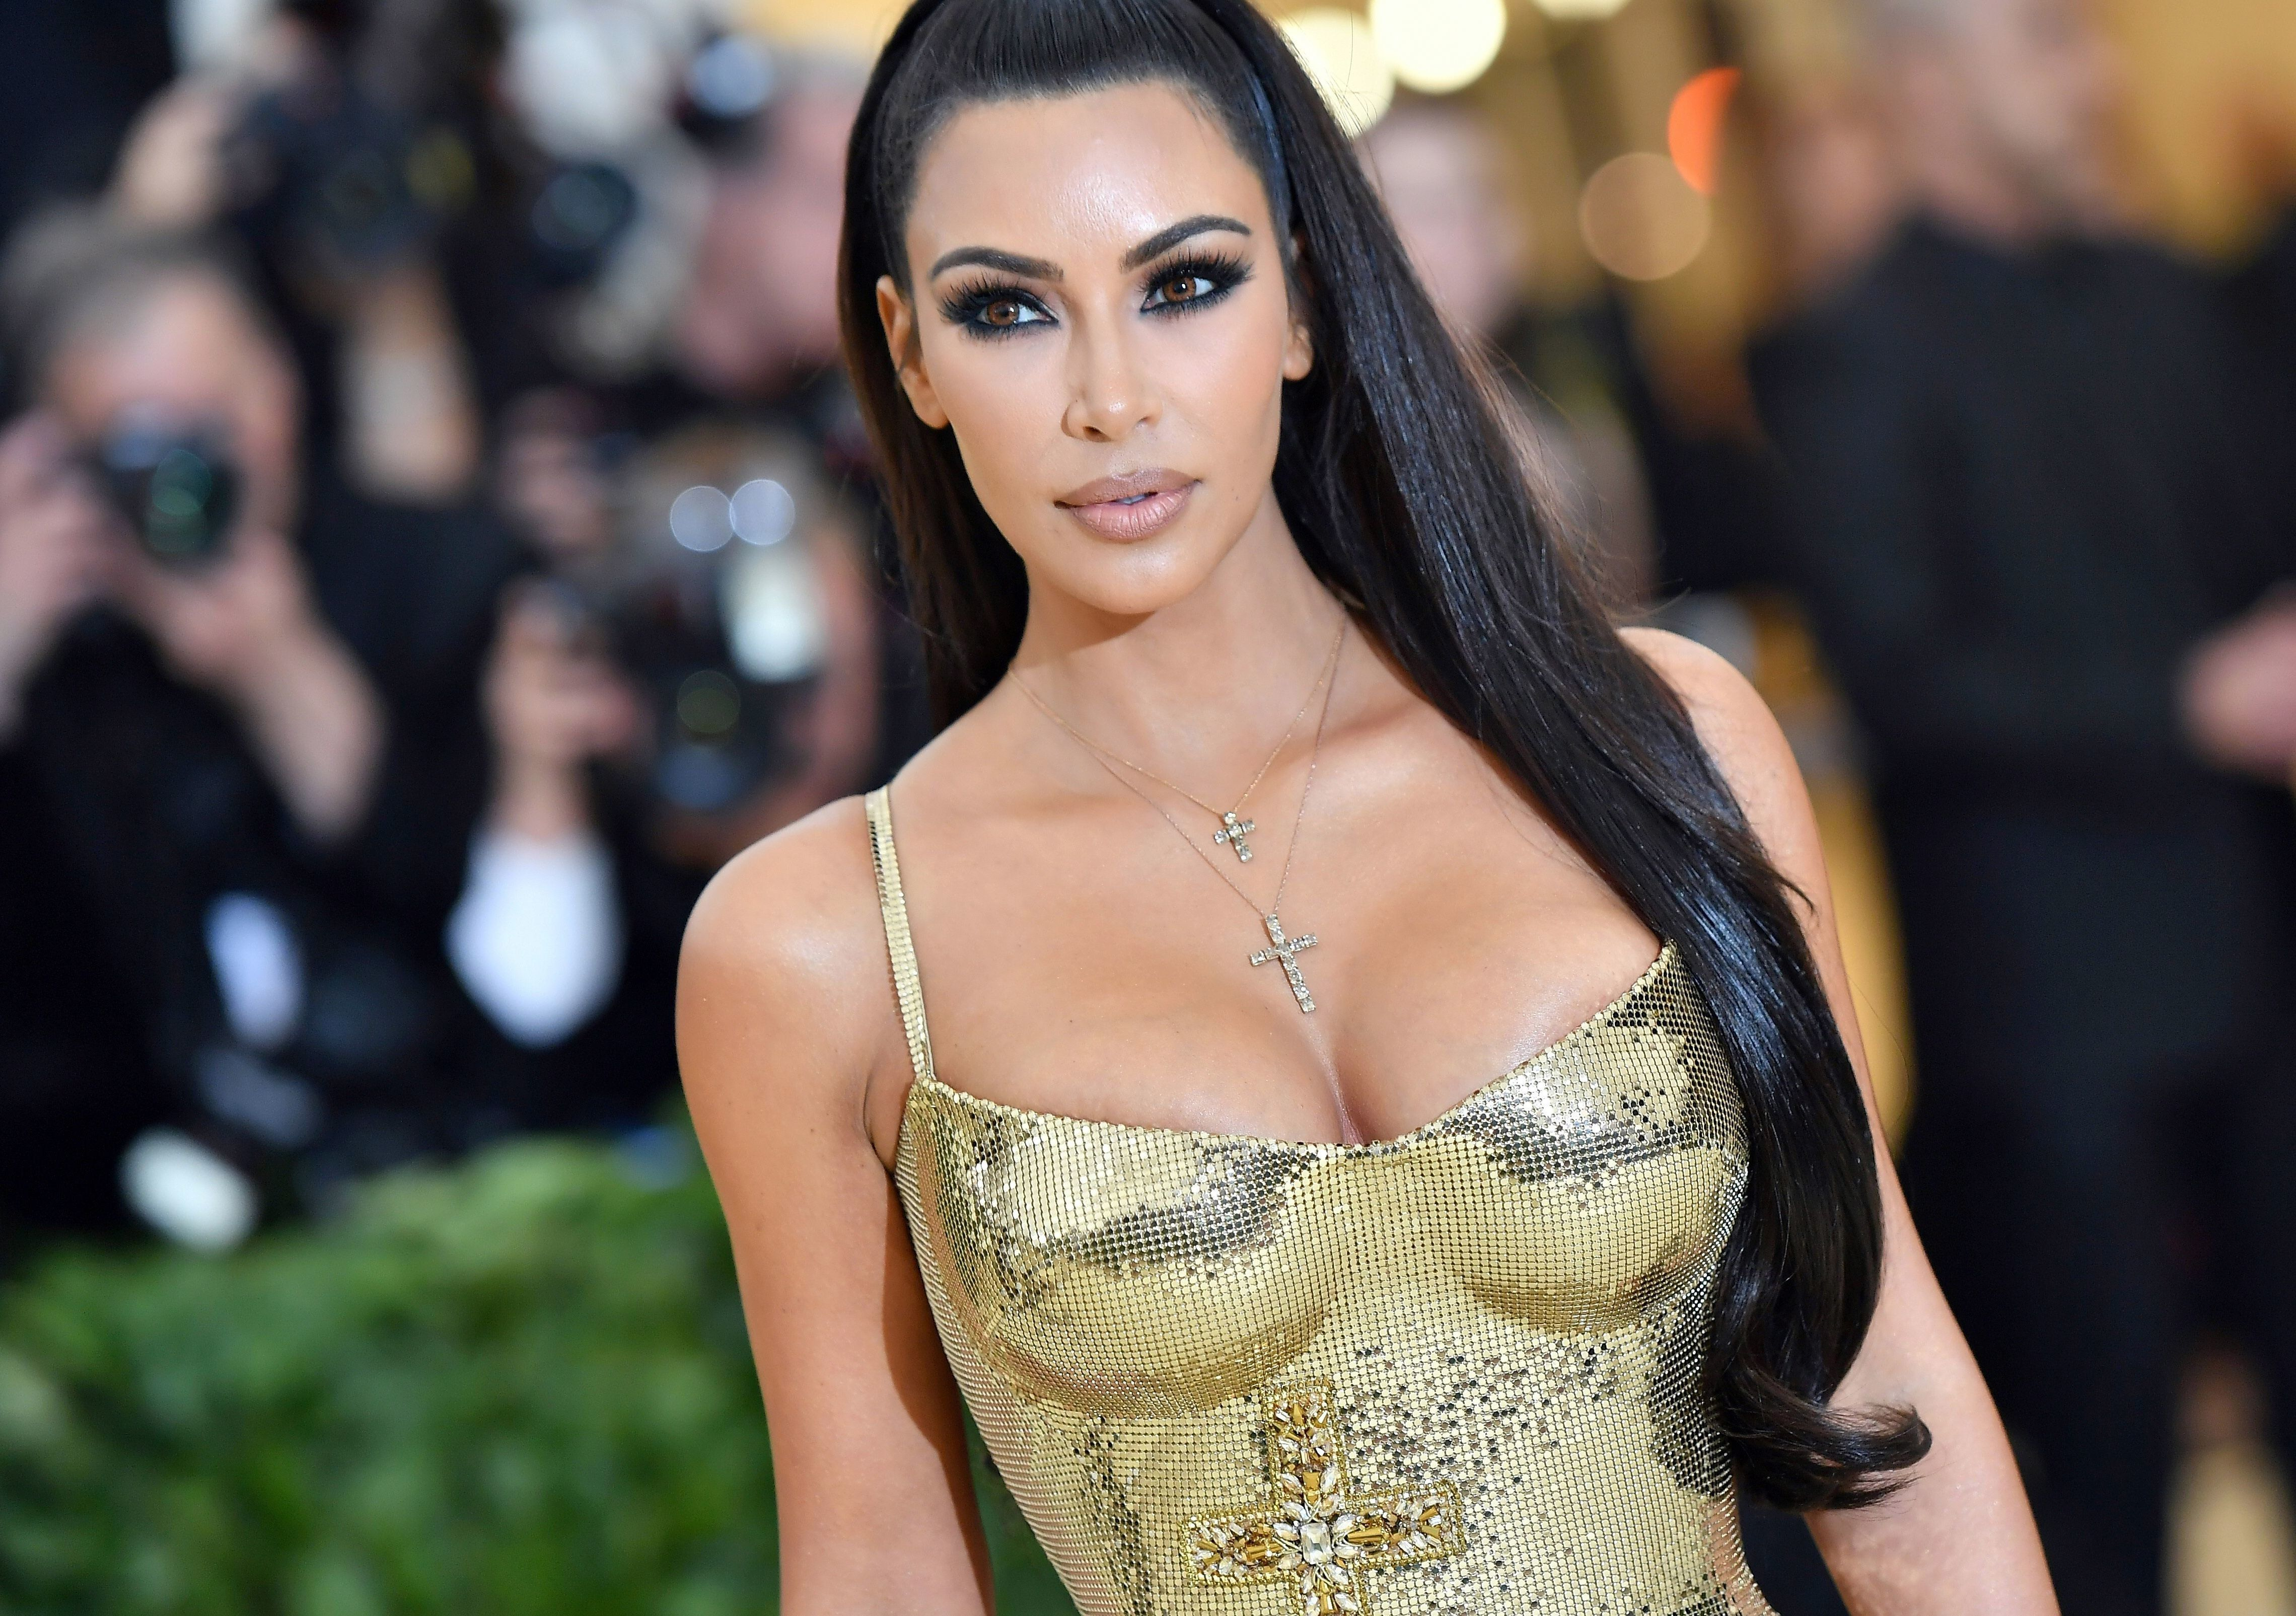 Kim Kardashian recently drew criticism for an Instagram ad where she endorsed a lollipop that claims to suppress one's appetite.